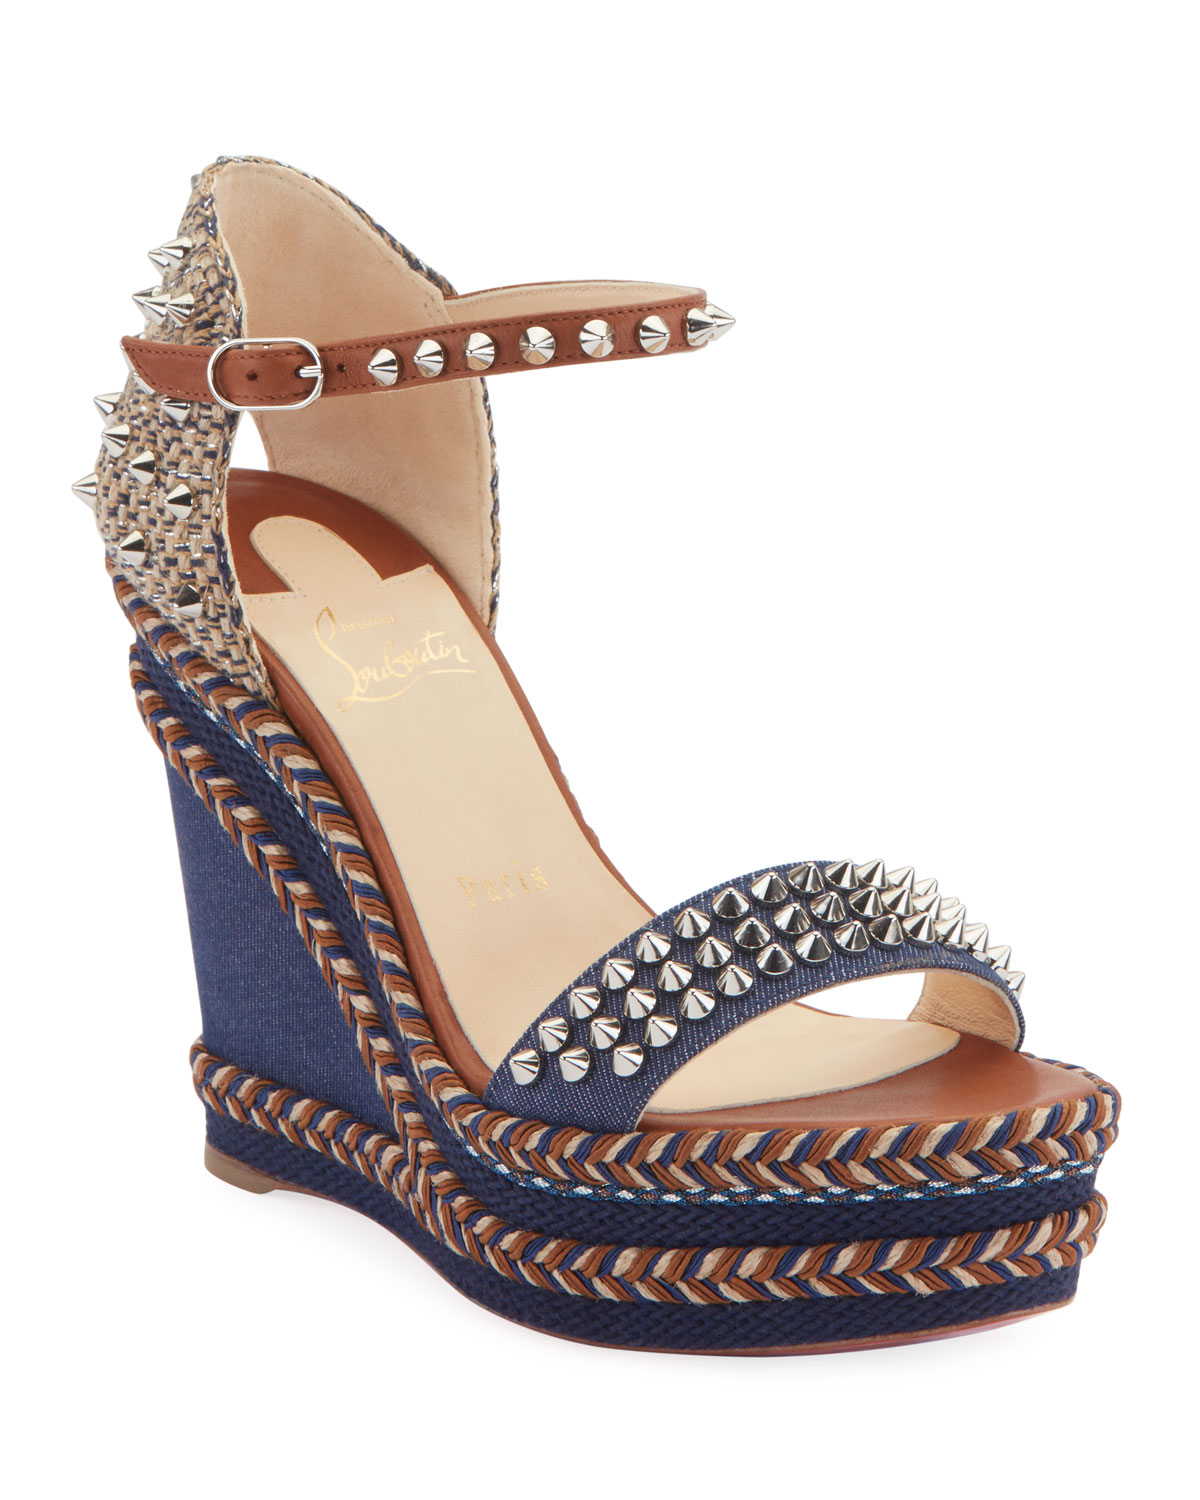 outlet store 19539 868ce Madmonica 120mm Spiked Denim Wedge Red Sole Sandals